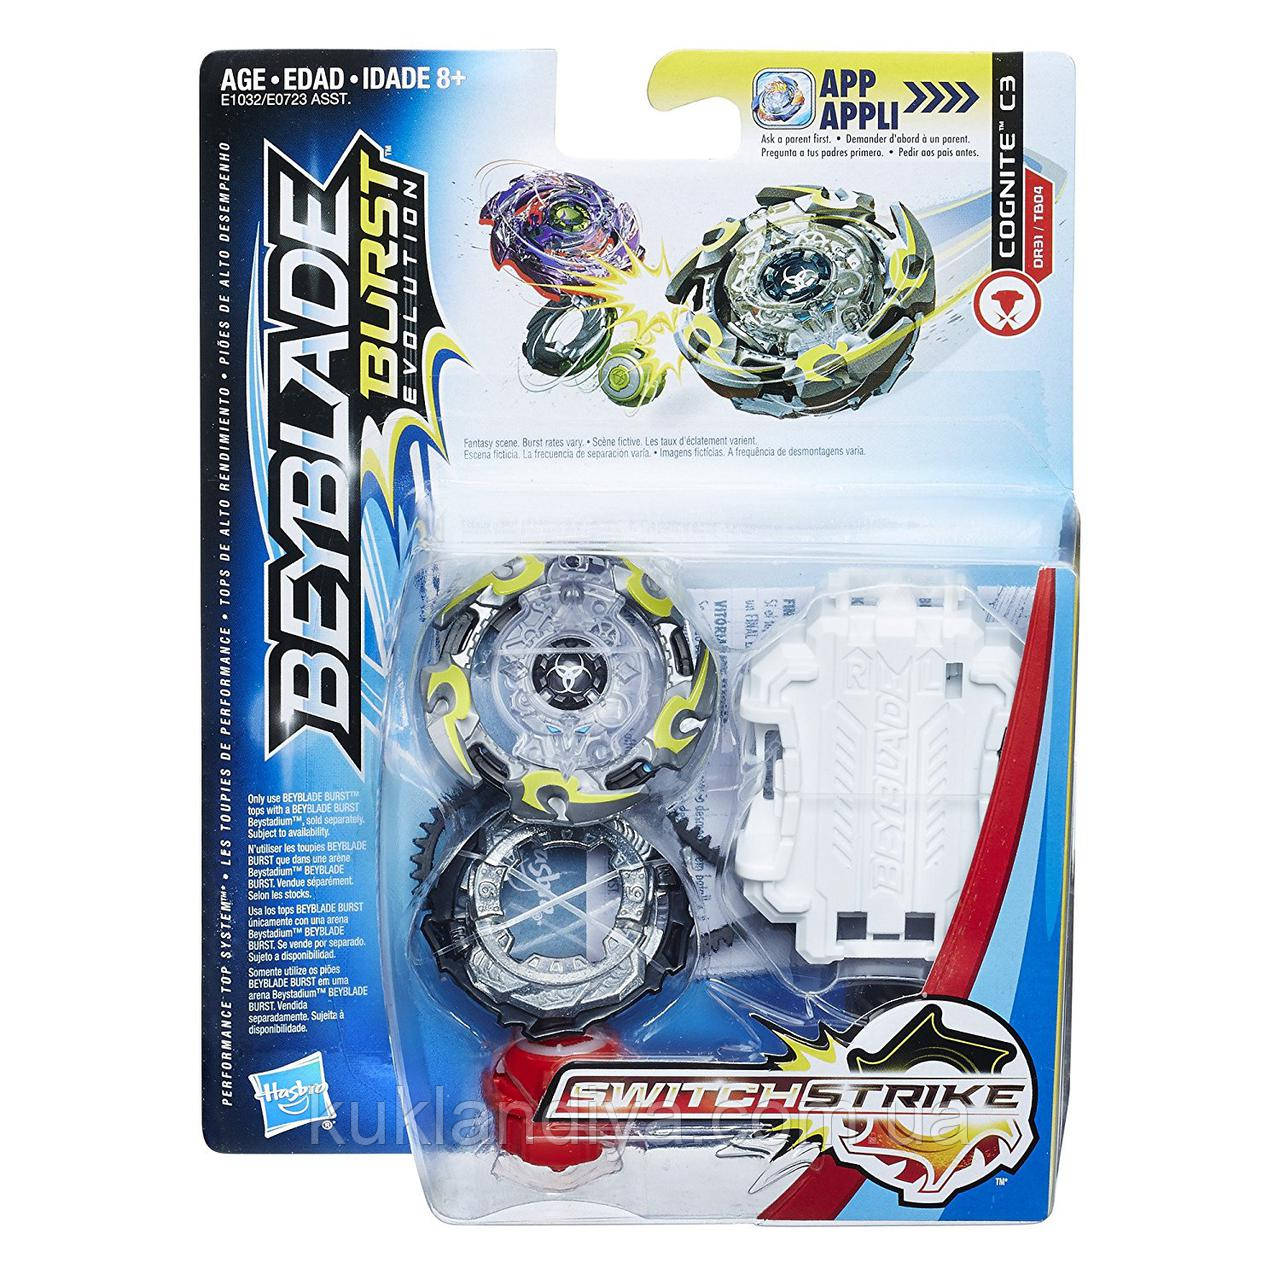 Cognite C3 Beyblade Burst Evolution SwitchStrike - Когнайт C3 с пусковым устройством DR31 /TB04 Hasbro